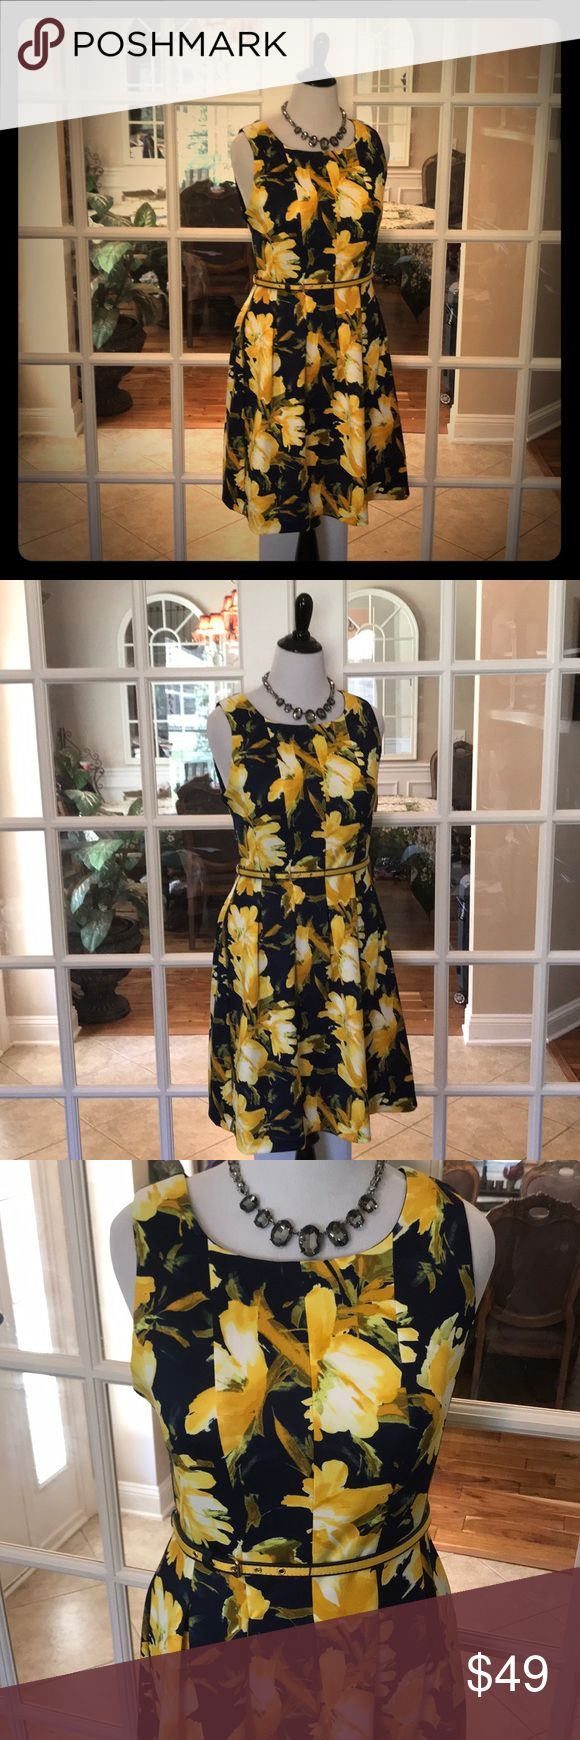 🆕 Karen Stevens Navy & Yellow Dress JUST IN‼️-  This Navy & Yellow Karen Stevens Dress is bright and colorful!  Pleated in all their right places with a navy an yellow belt, gives it a gorgeous trimming effect.   Dress has amazing stretch and is machine washable!  92% Polyester and 8% Spandex. 💞 Karin Stevens Dresses